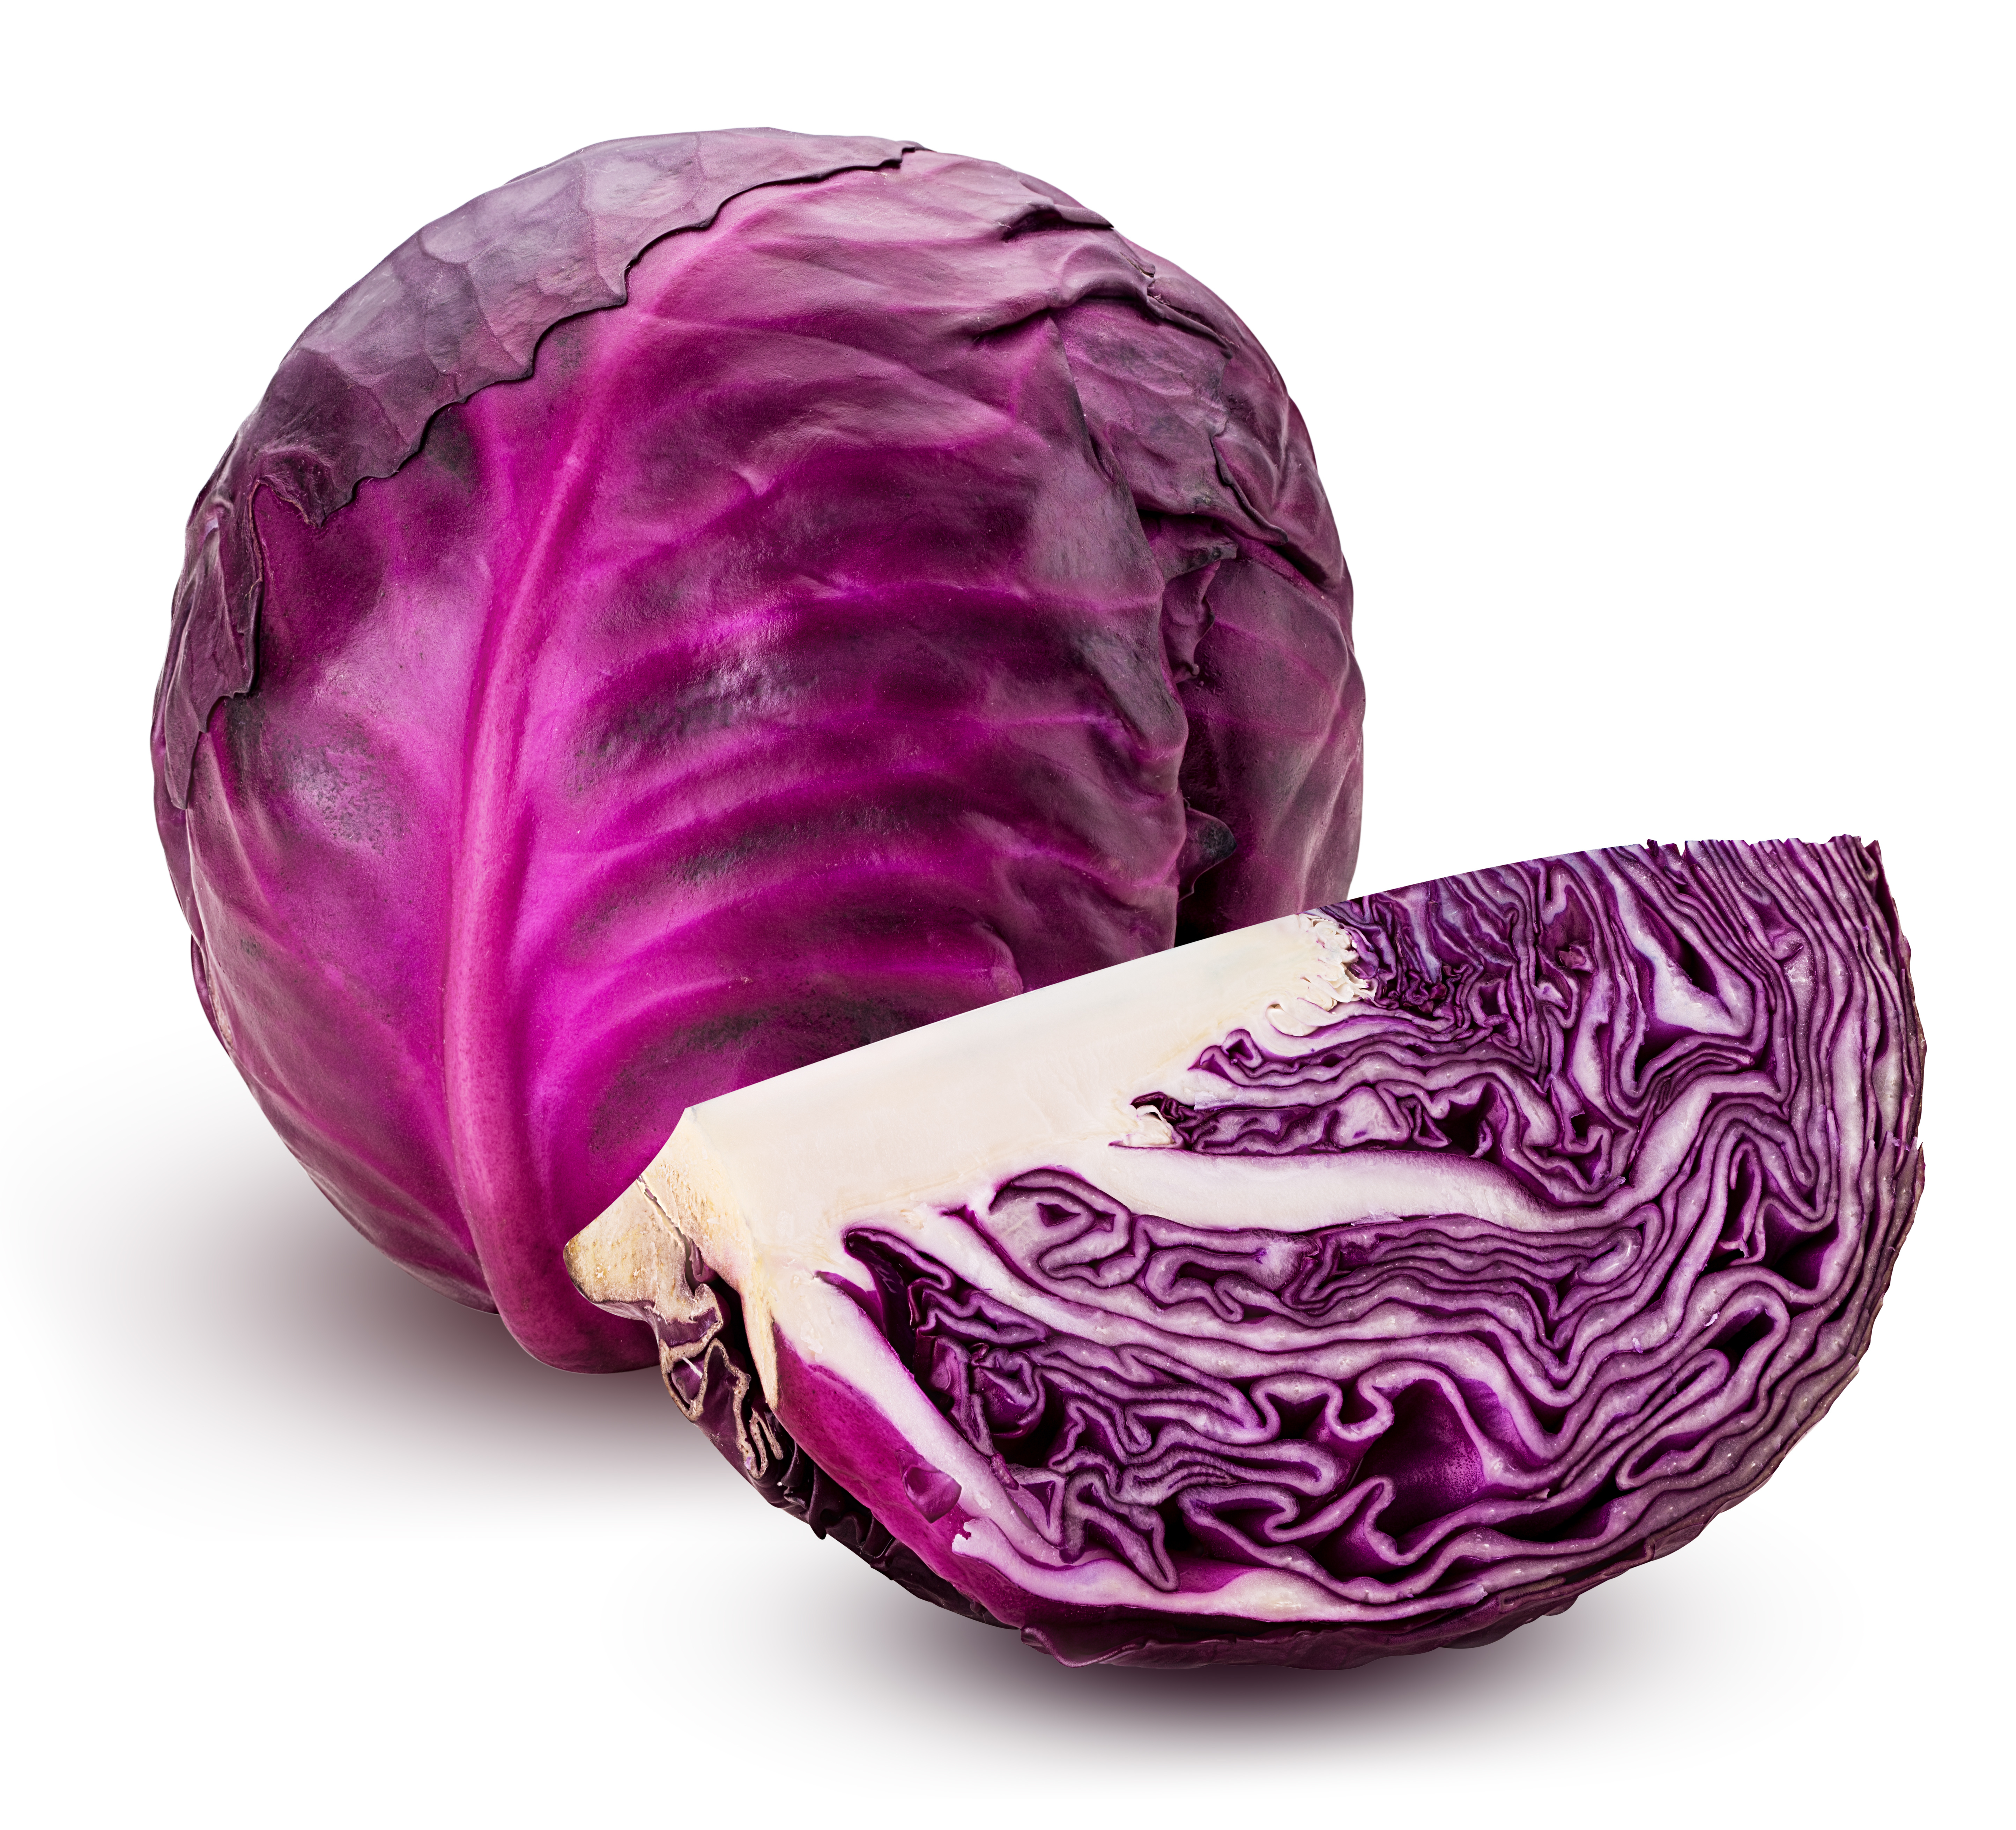 Red cabbage one slice isolated on white background